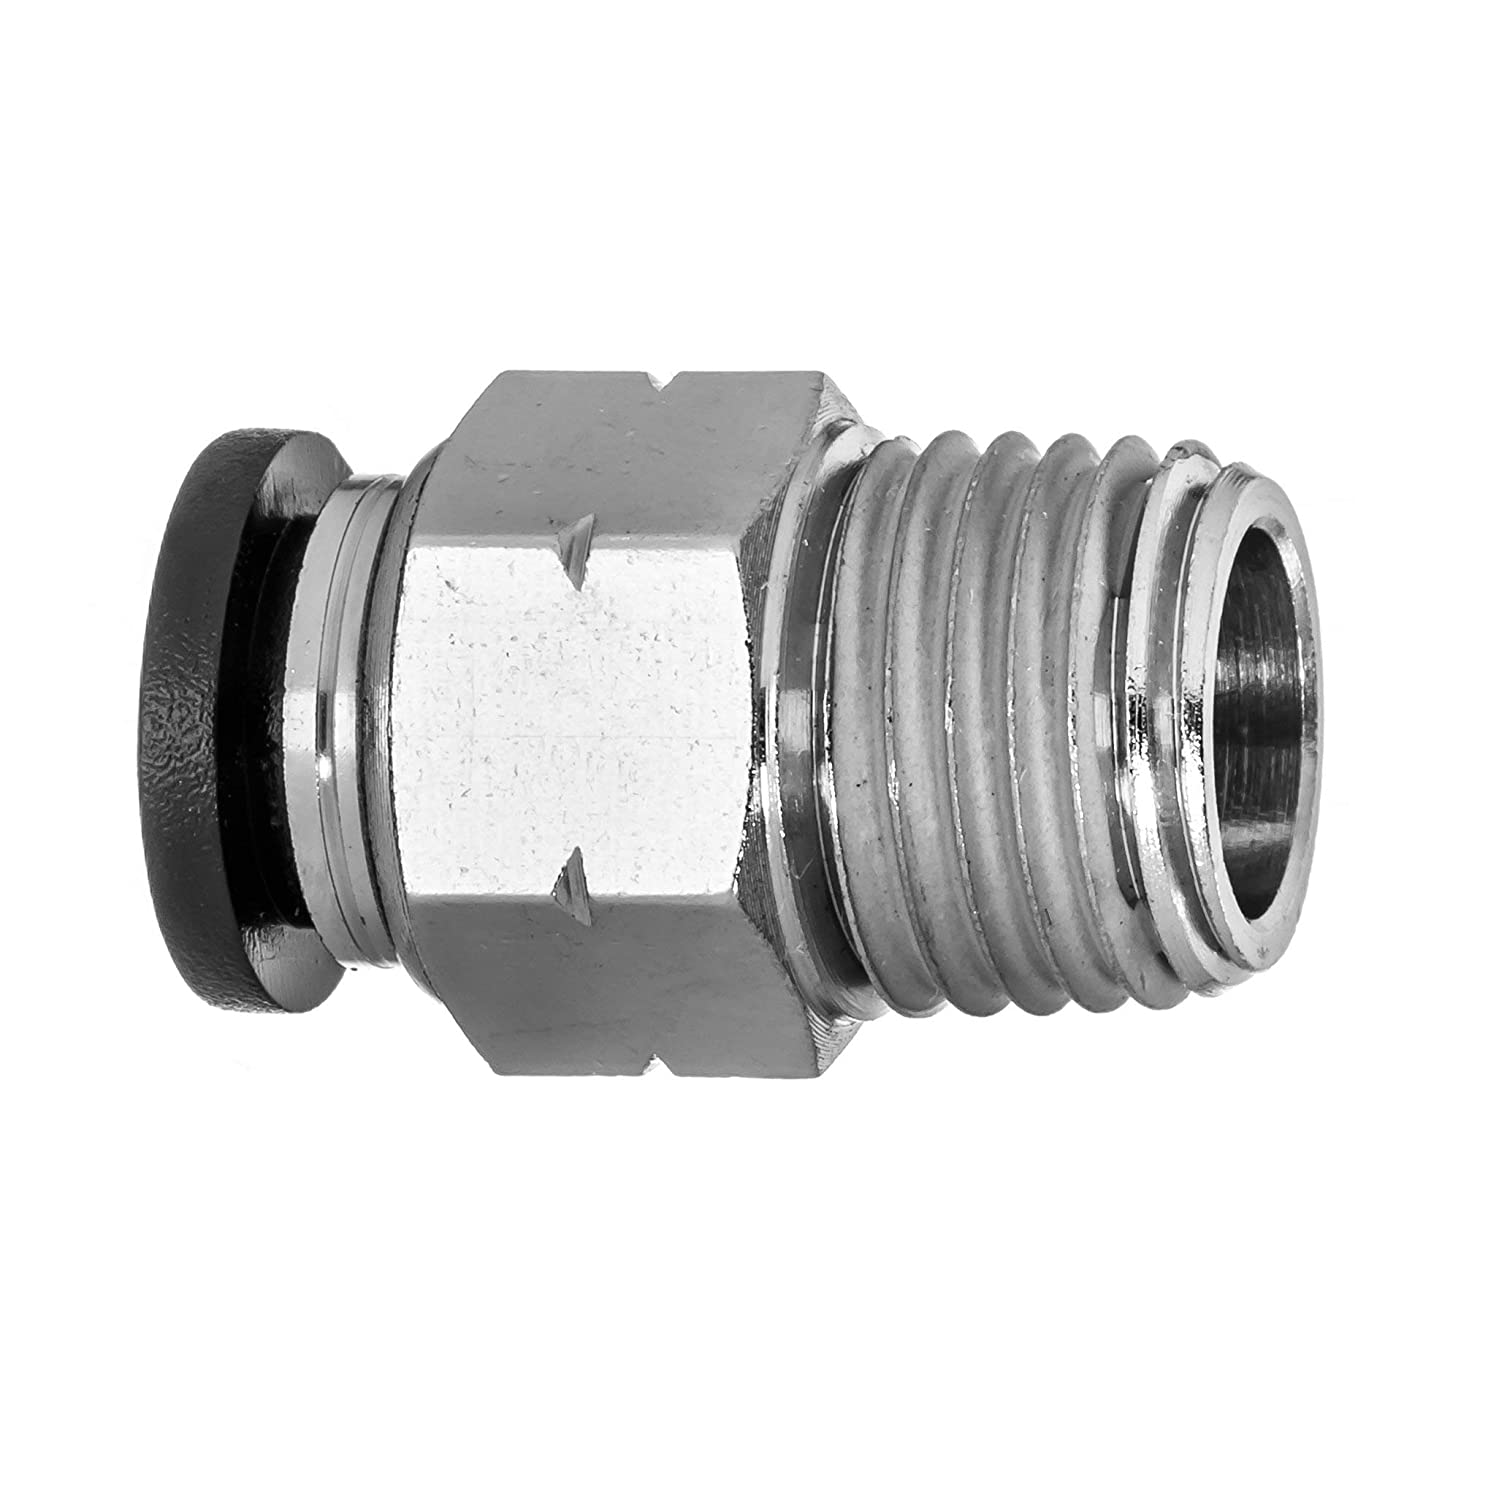 Nylon Plastic Male Straight USA Sealing Push to Connect Tube Fitting 1//4 Tube OD x 1//4 BSPT Male